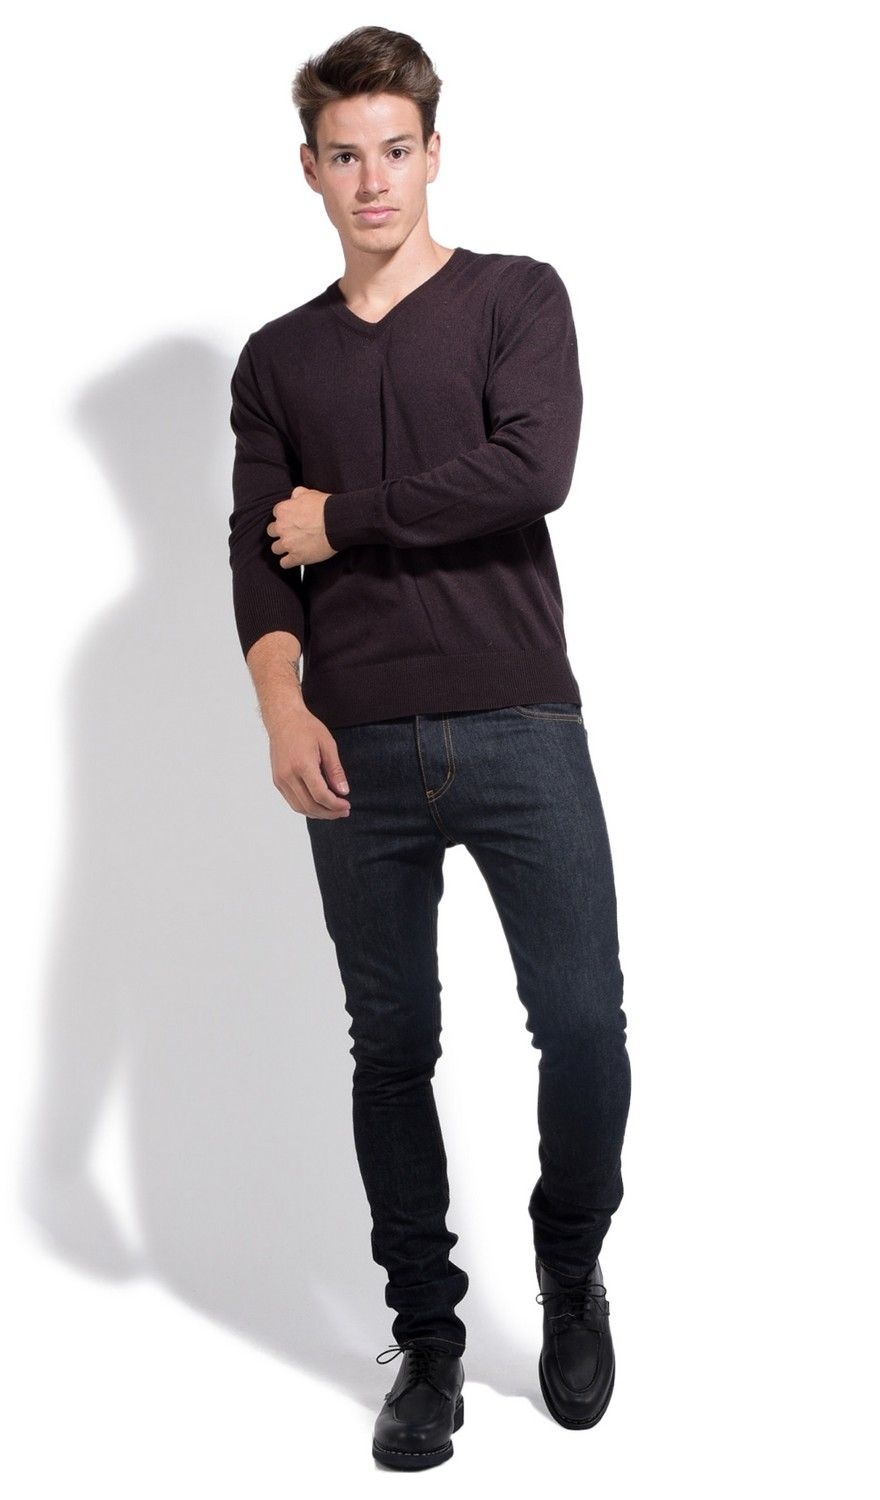 William De Faye V-neck Sweater with Contrasting Inner Collar in Brown